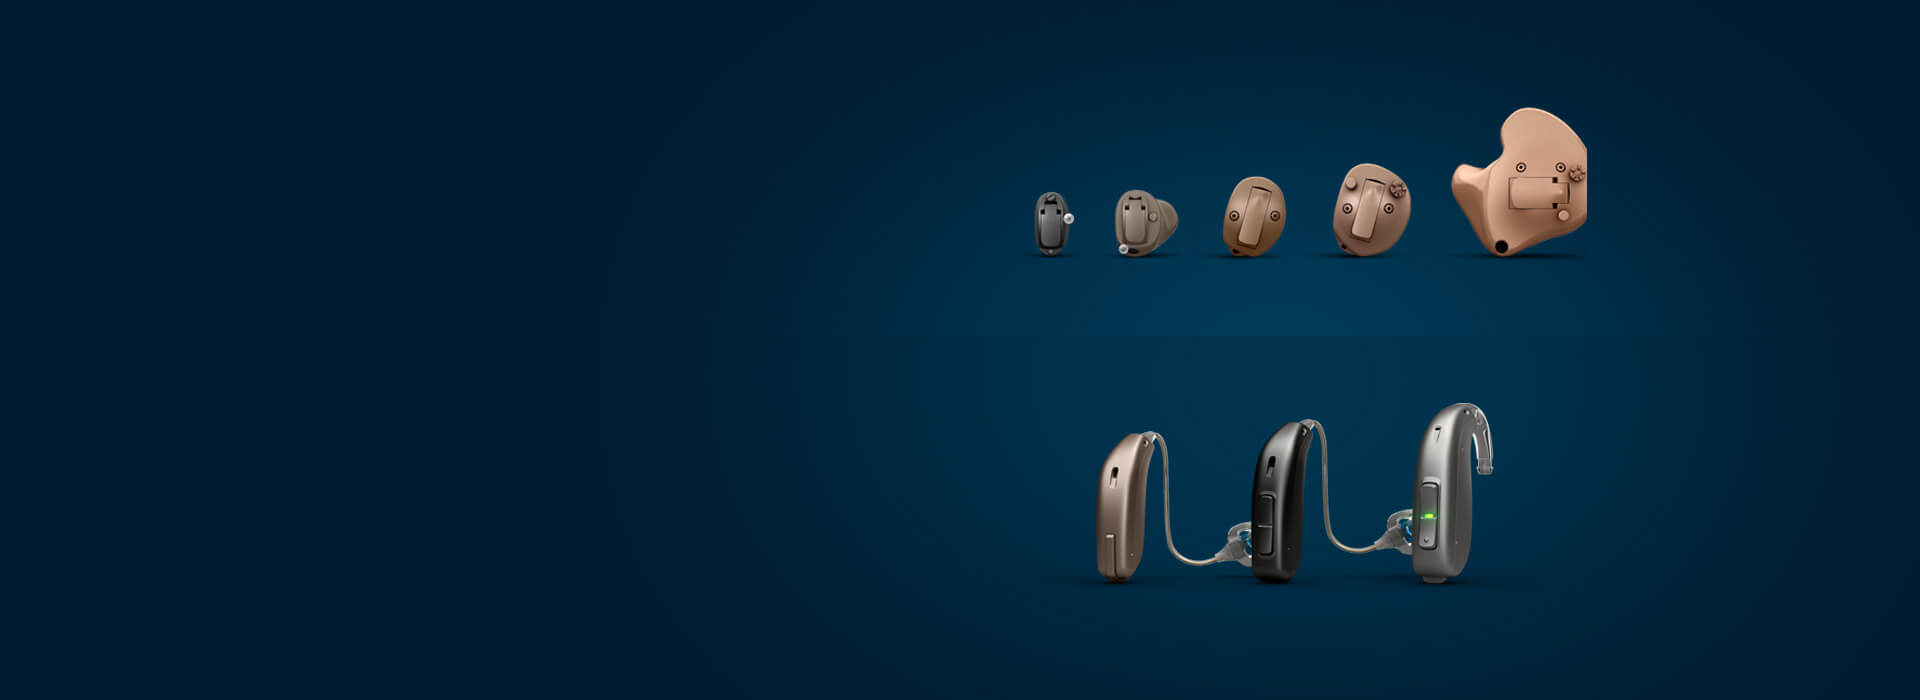 Types of hearing aids